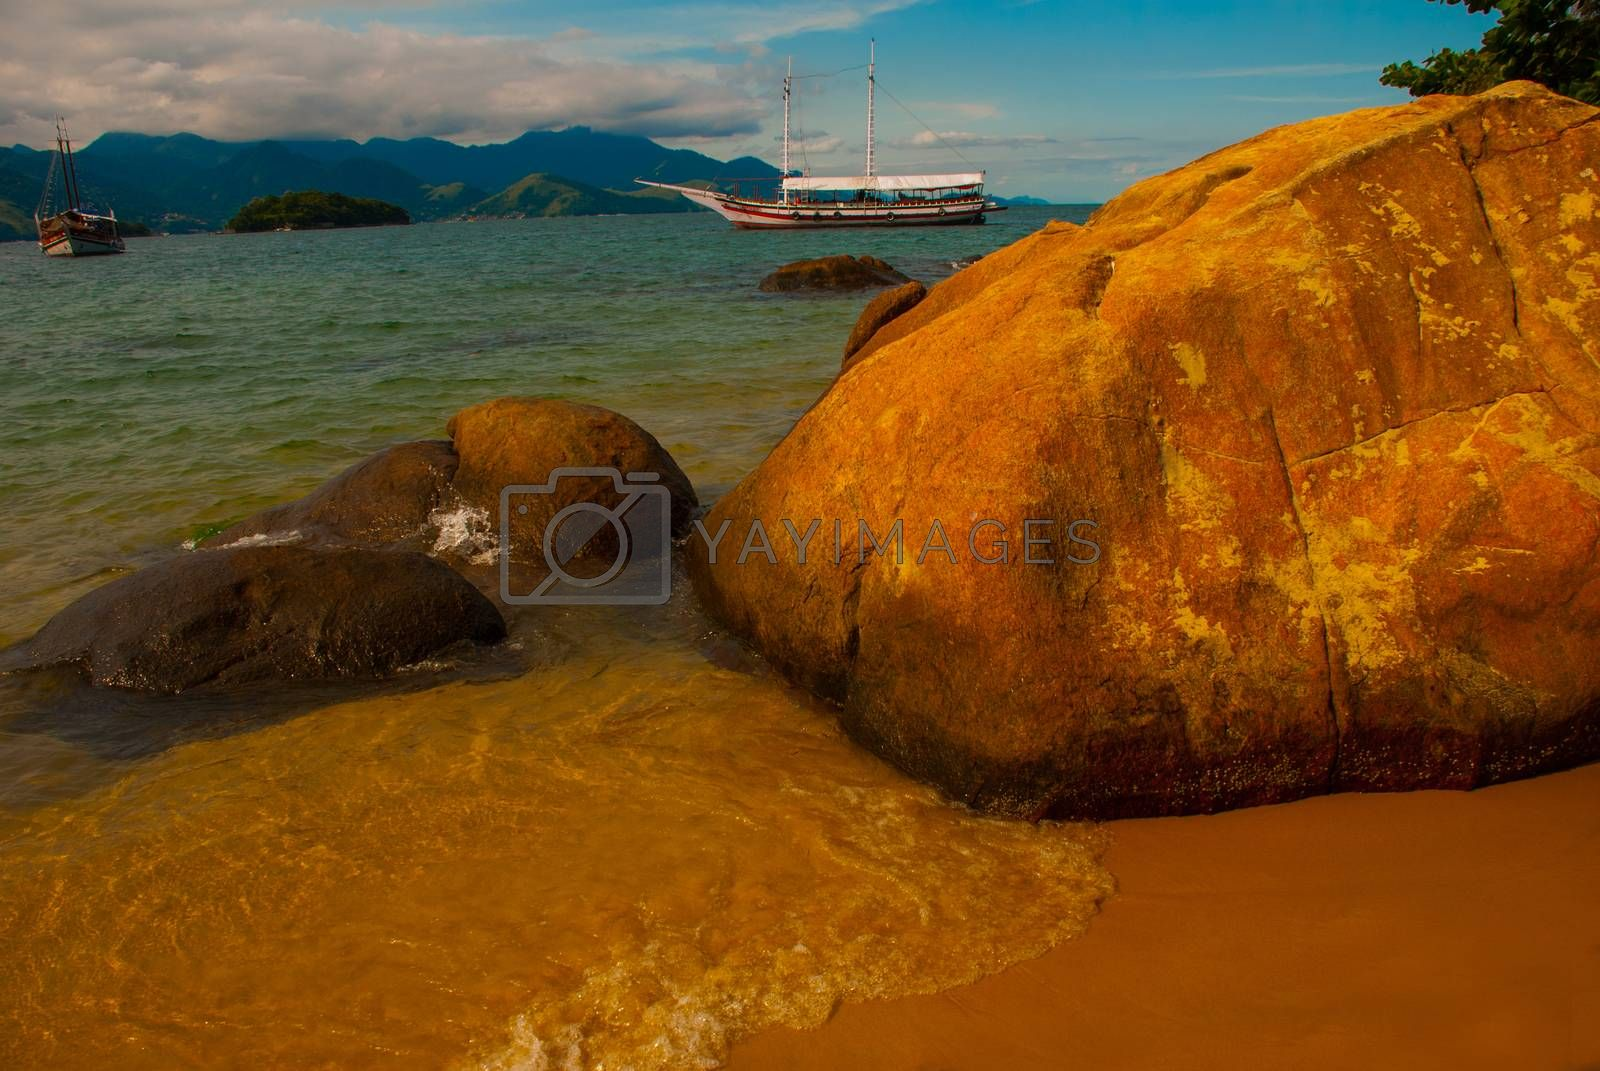 Ilha Grande, Brazil: In the sea stylized ships with tourists. Beautiful tropical beach with rocks on the island, Rio de Janeiro state, Brazil